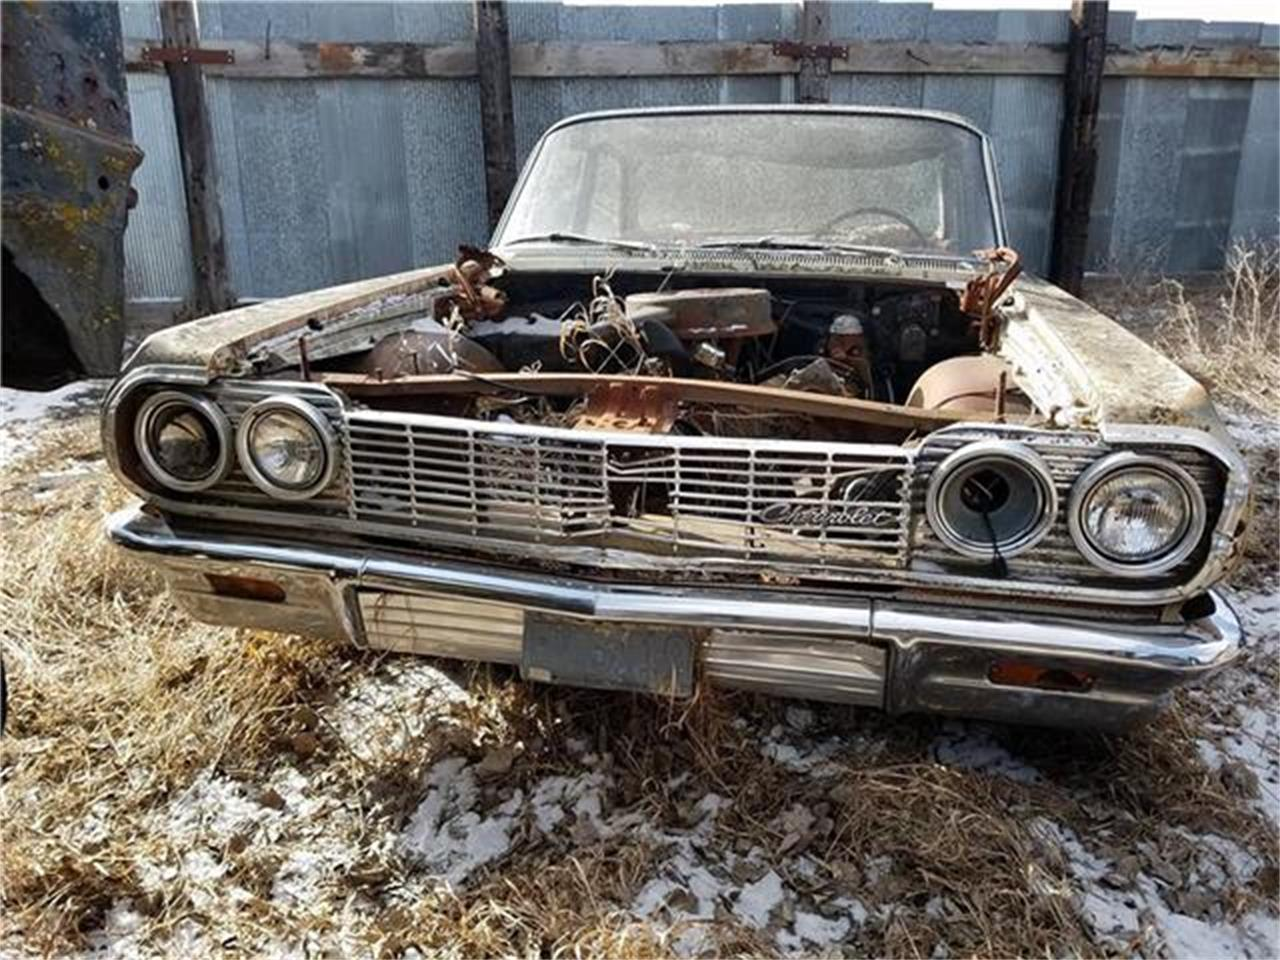 1964 Chevrolet Bel Air (CC-1017151) for sale in Crookston, Minnesota